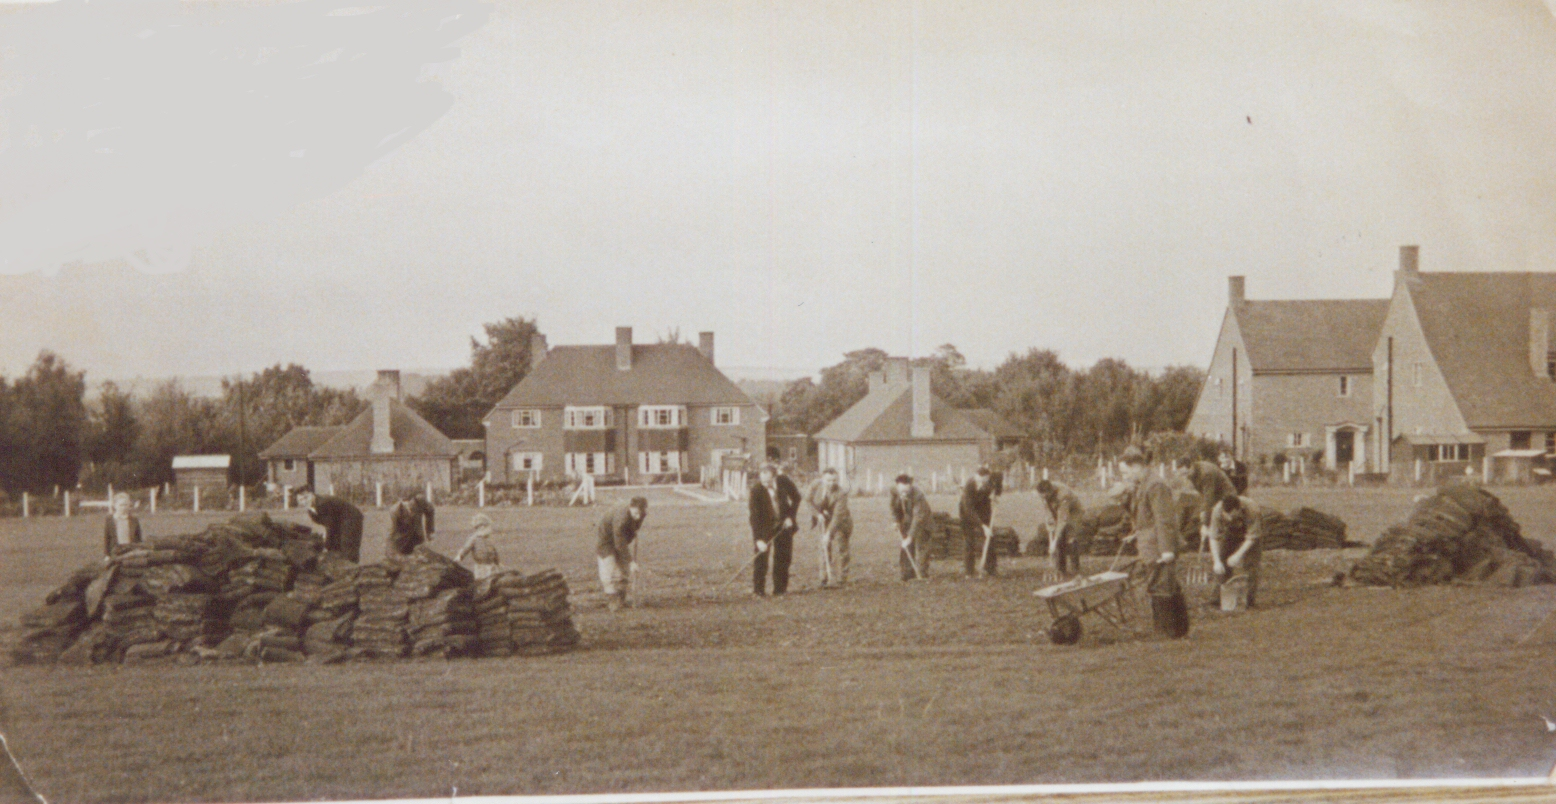 Working on the Village Sports field after it was donated to the Village